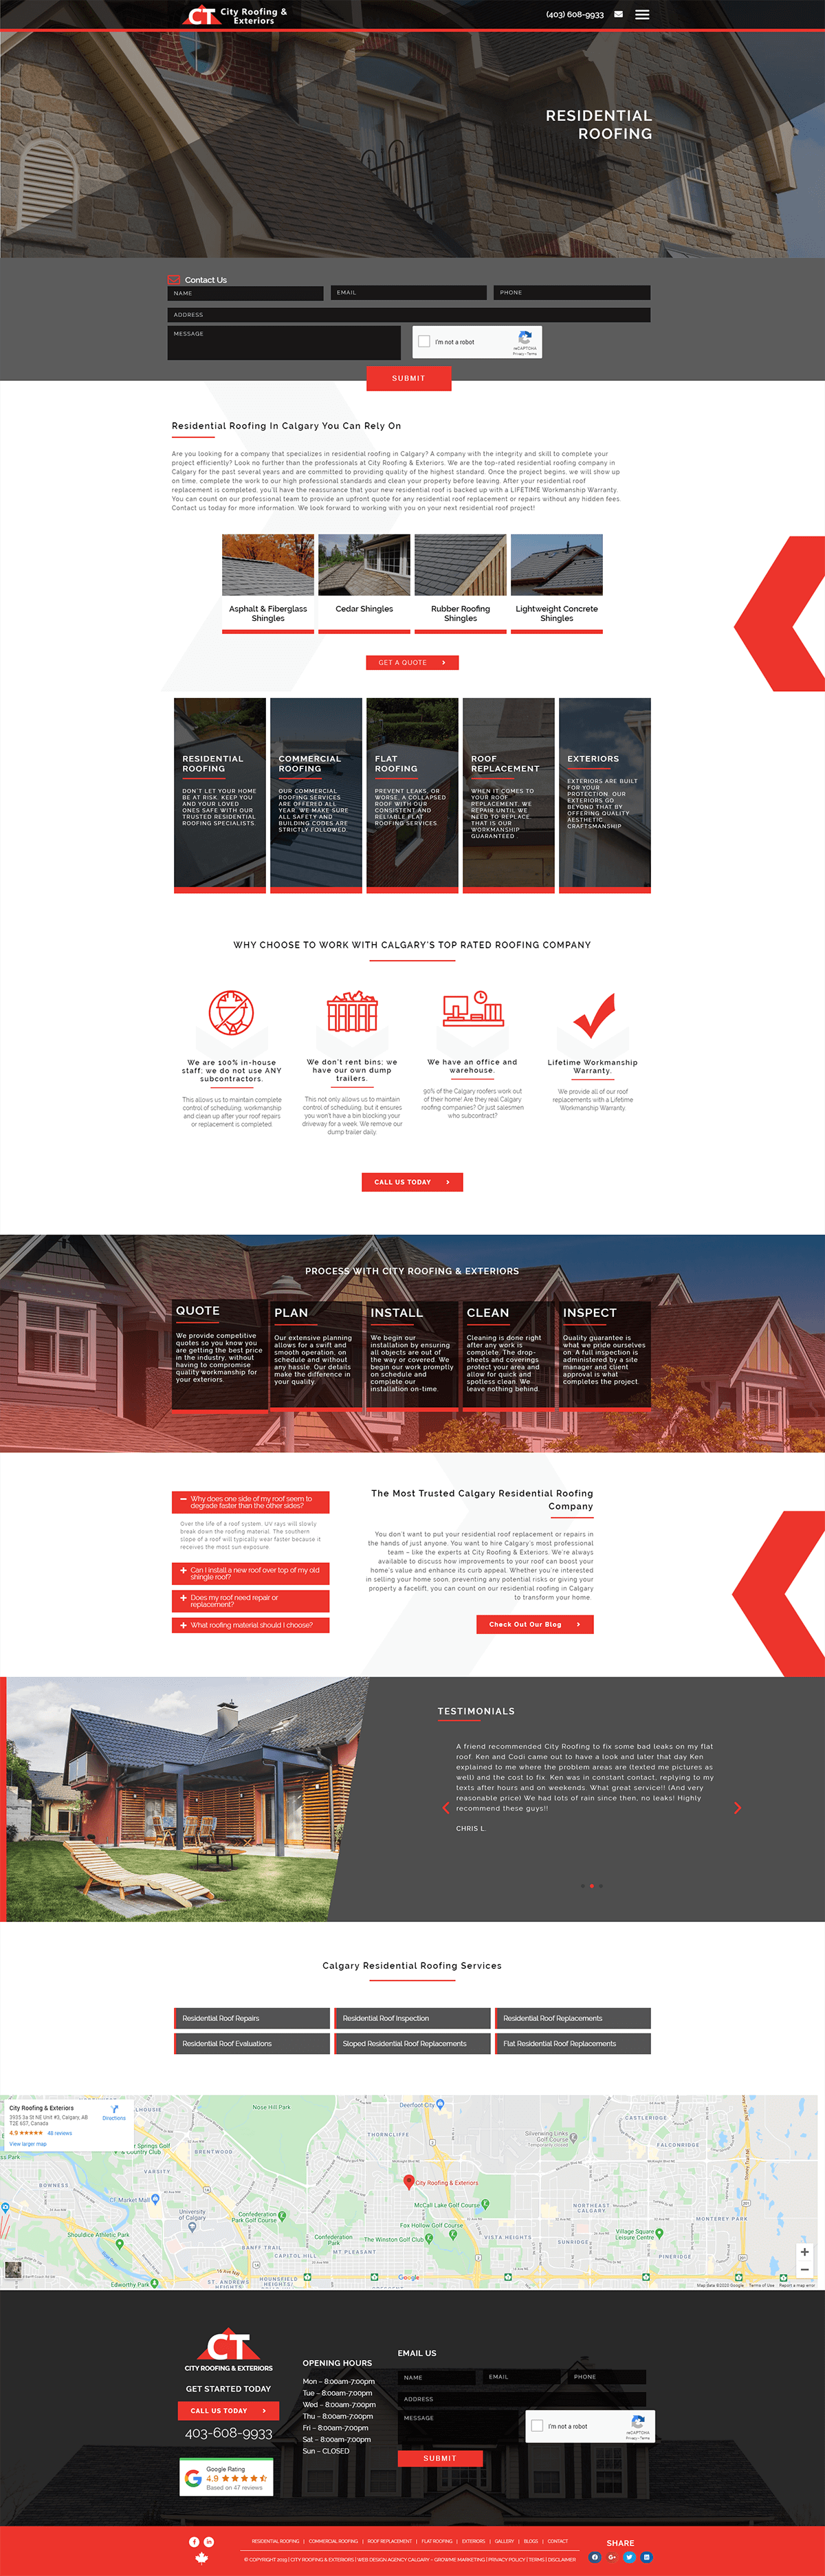 city roofing service page